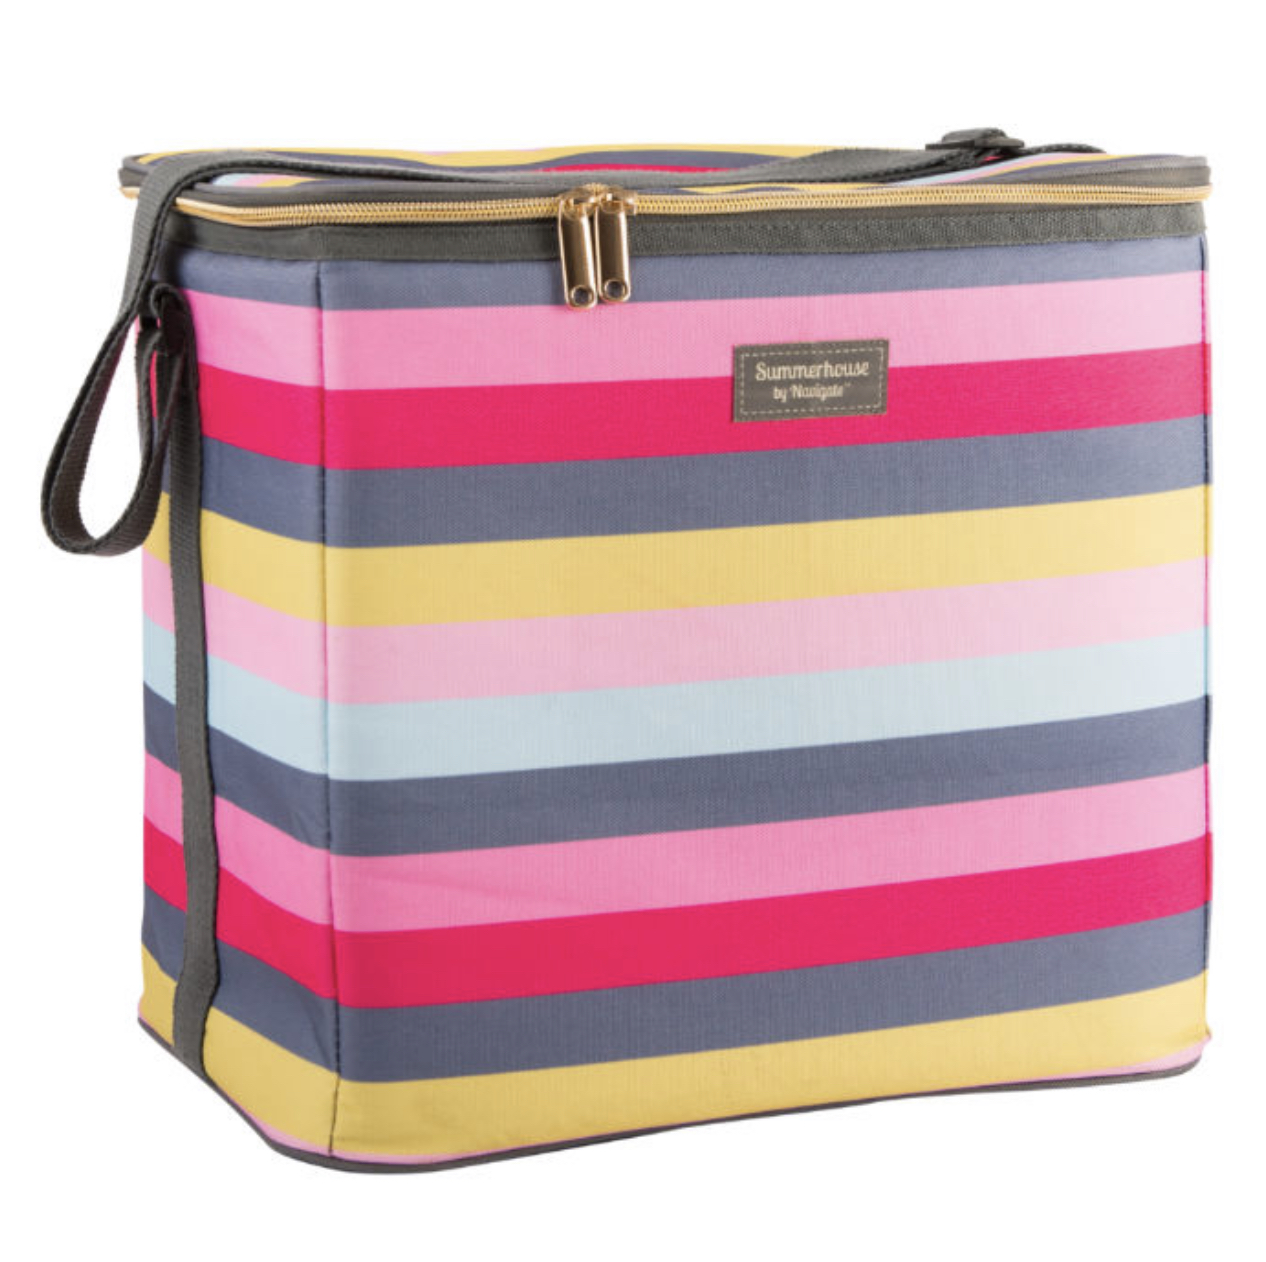 GARDENIA FAMILY COOLER – STRIPE PINK & GREY. SUMMERHOUSE